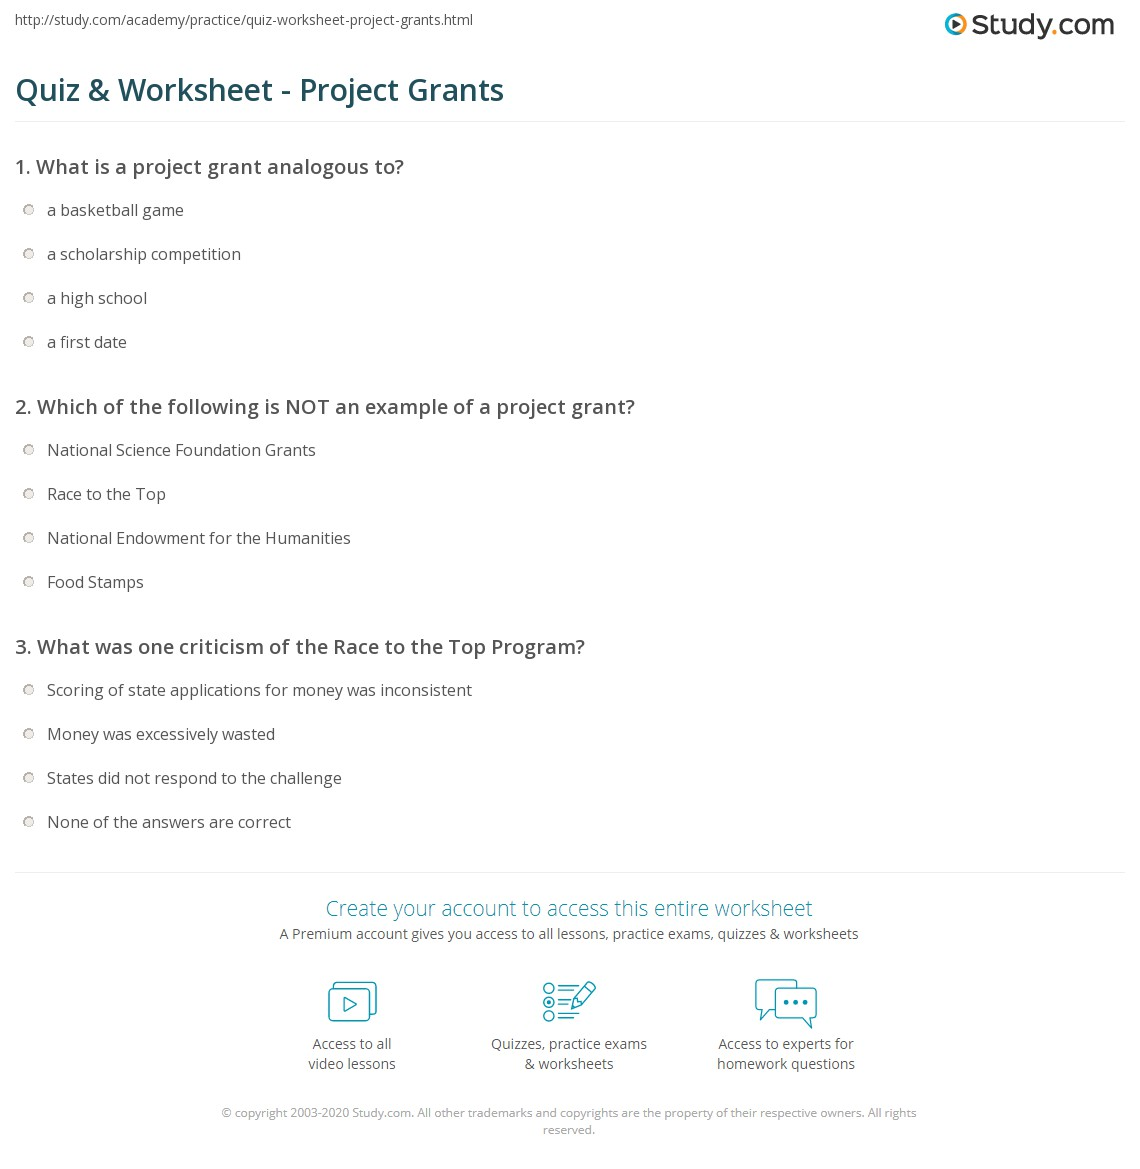 Quiz & Worksheet - Project Grants | Study.com